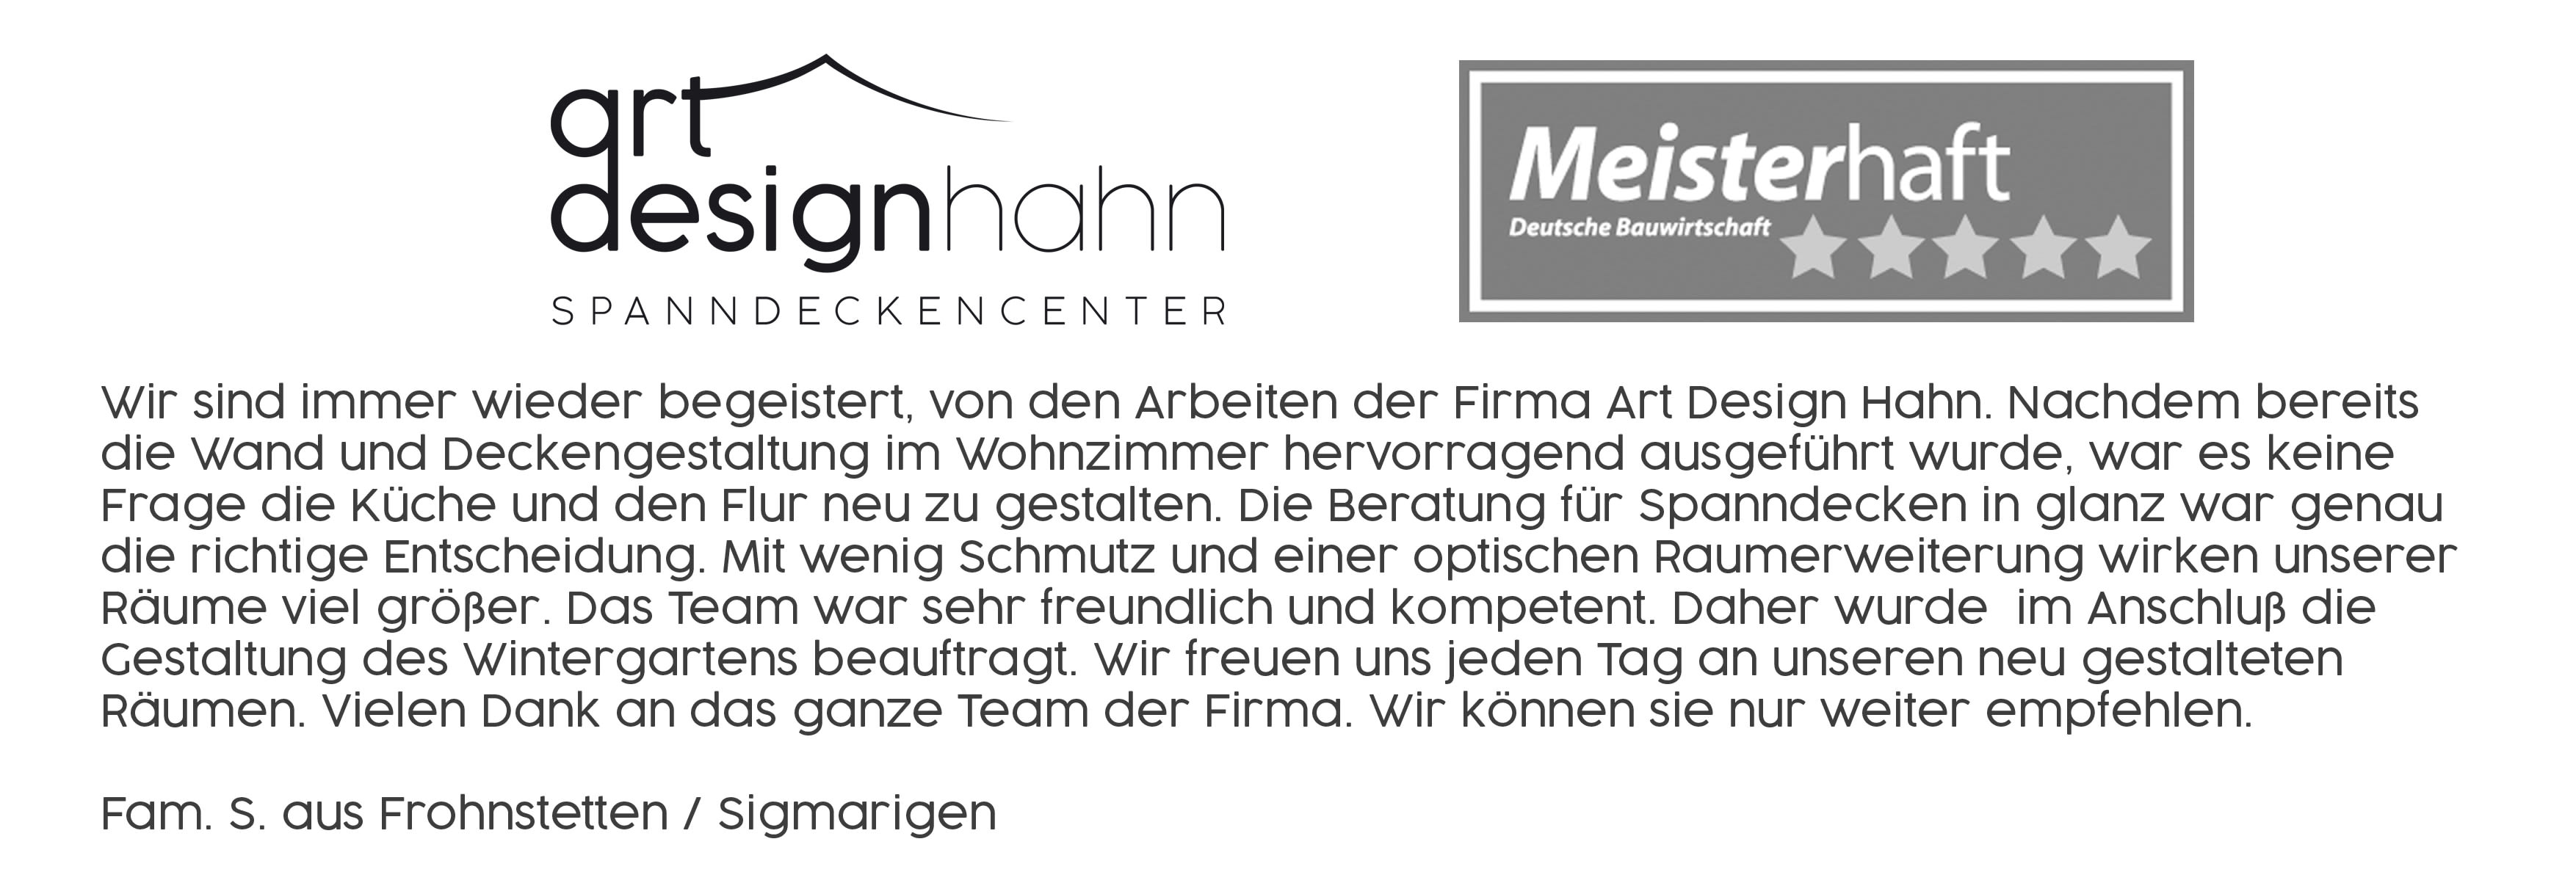 Art Design Hahn Meisterhafte Rezension 49